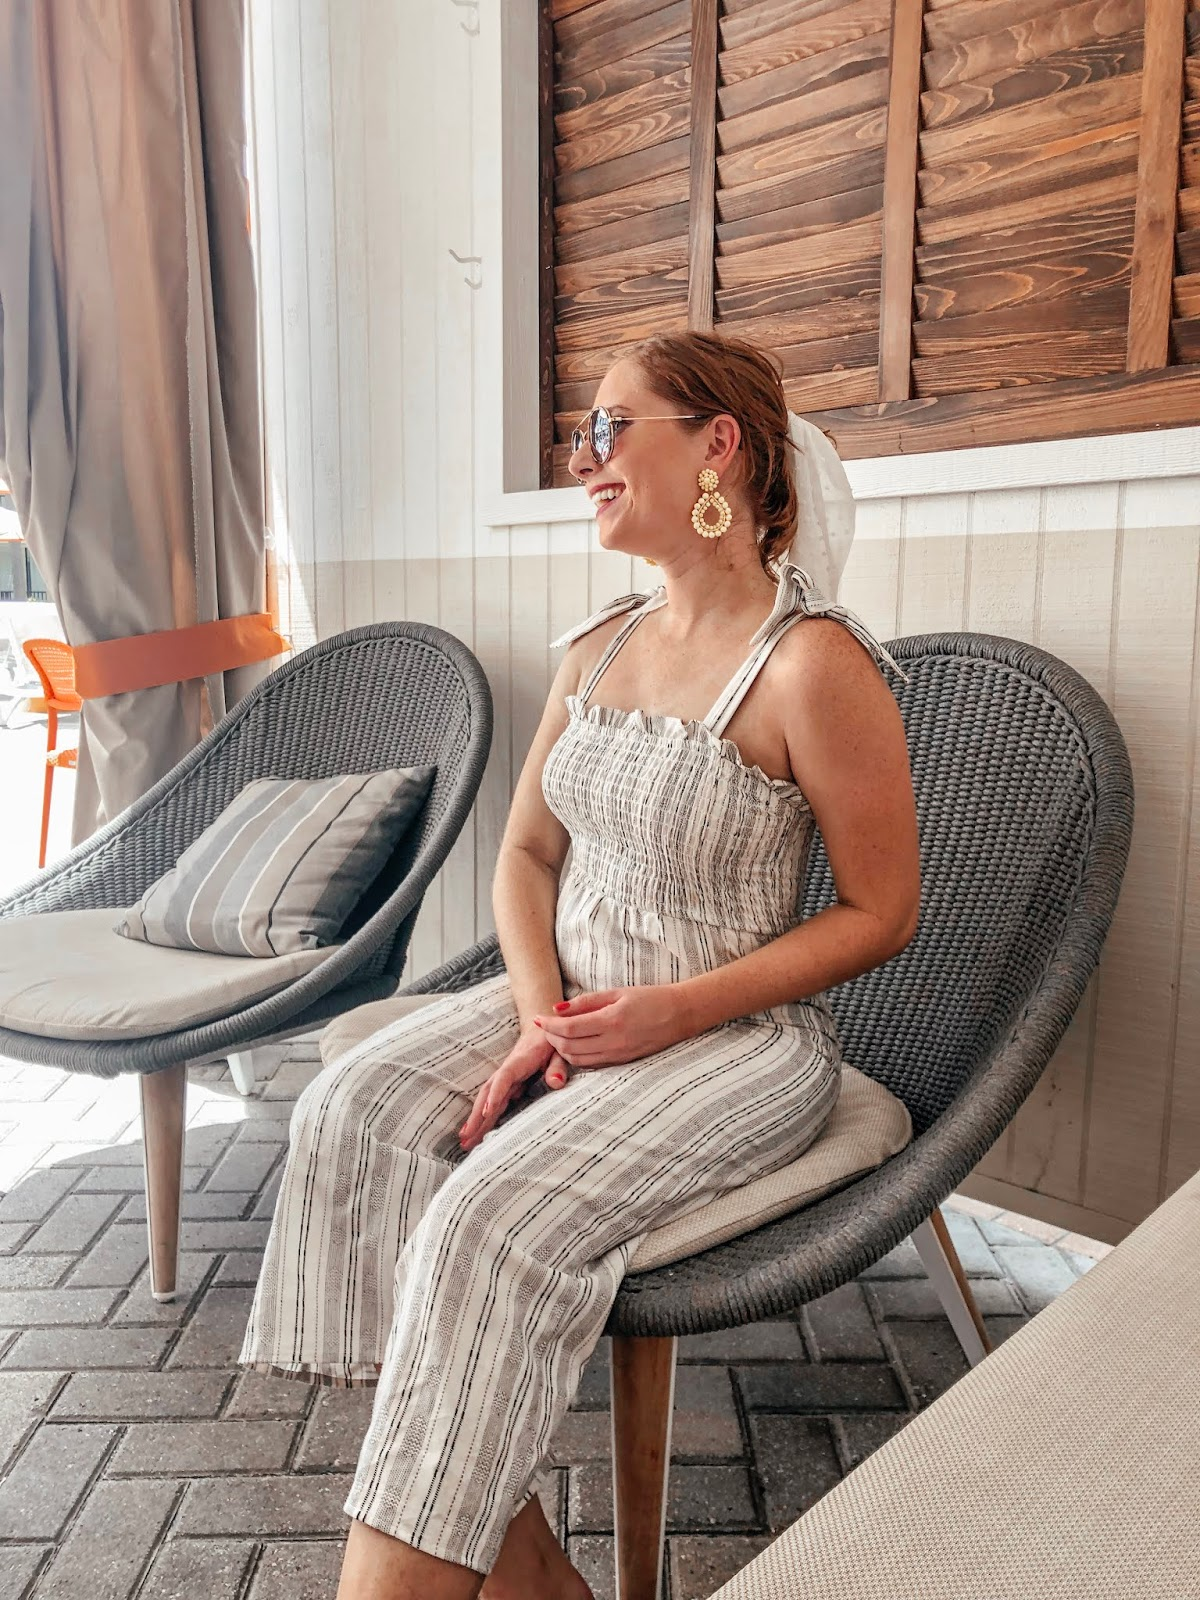 Hotel Review Sirata Beach Resort St. Pete Beach Staycation Affordable by Amanda | Tampa Blogger